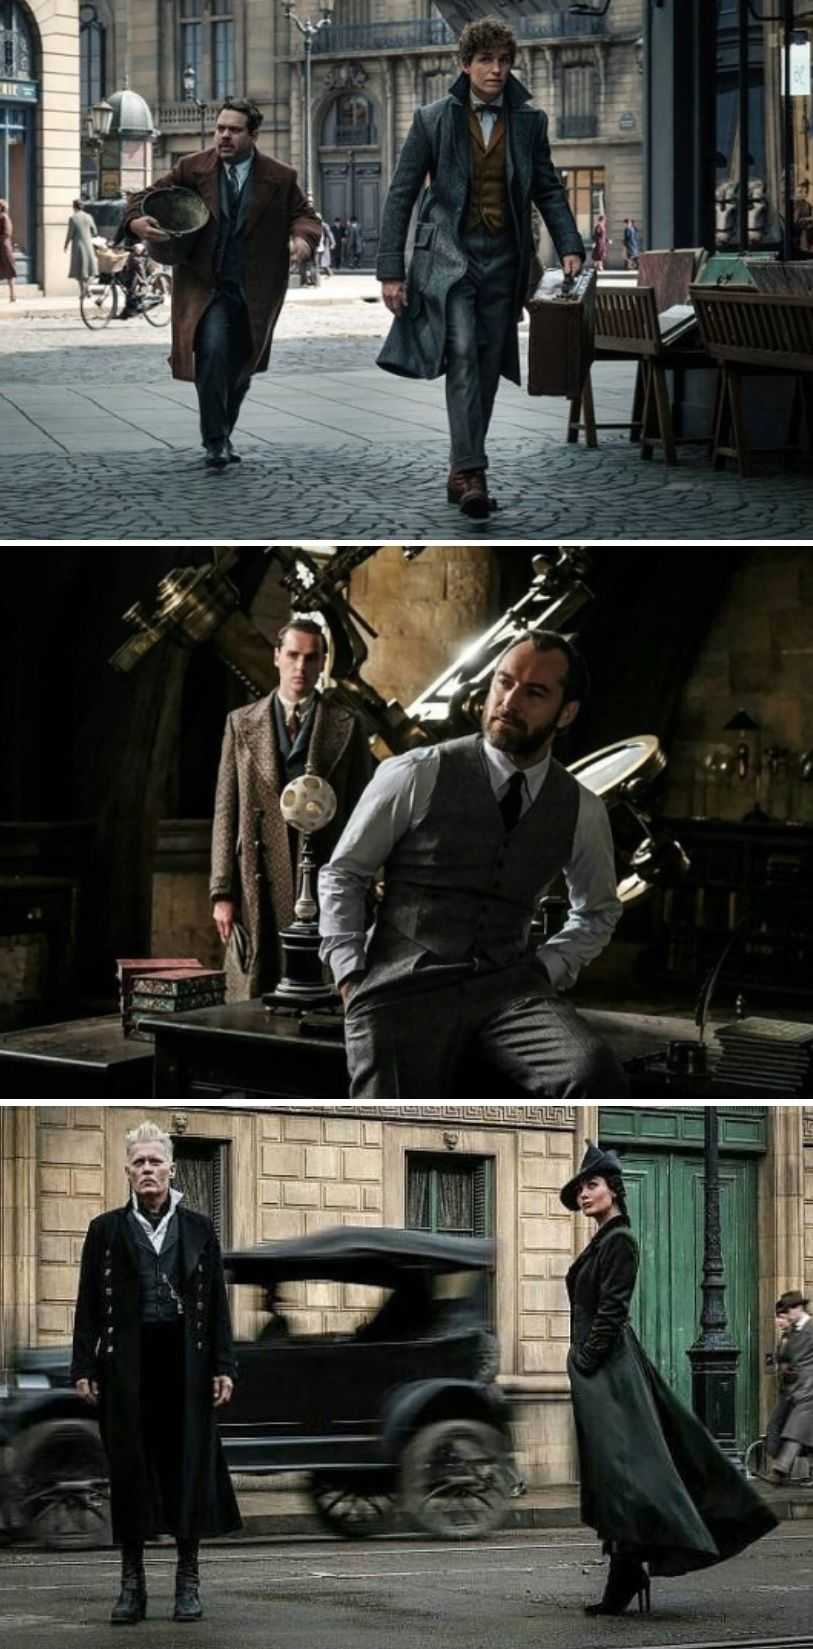 New Photos From Fantastic Beasts The Crimes Of Grindelwald